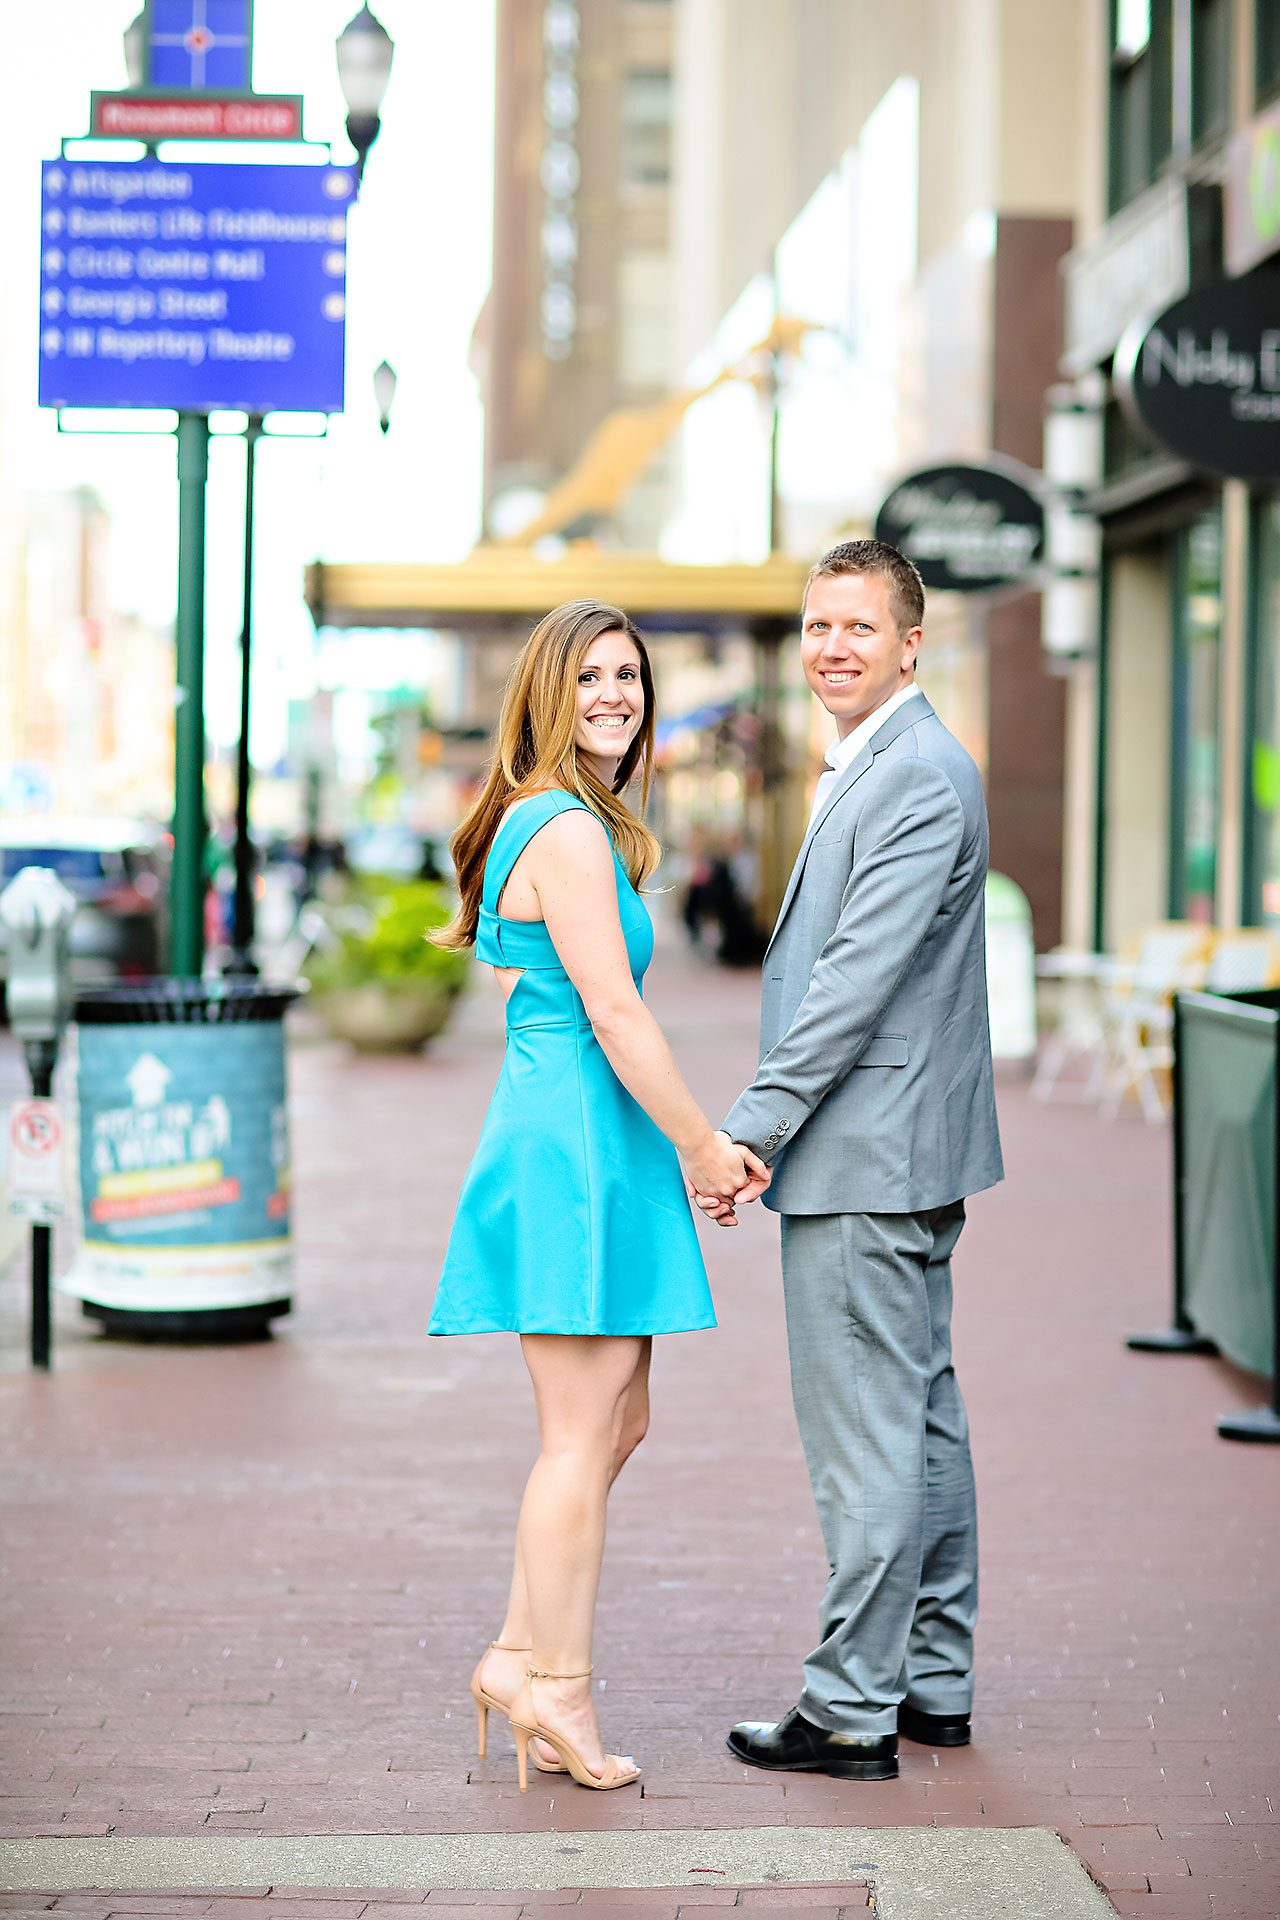 Chelsea Jeff Downtown Indy Engagement Session 083